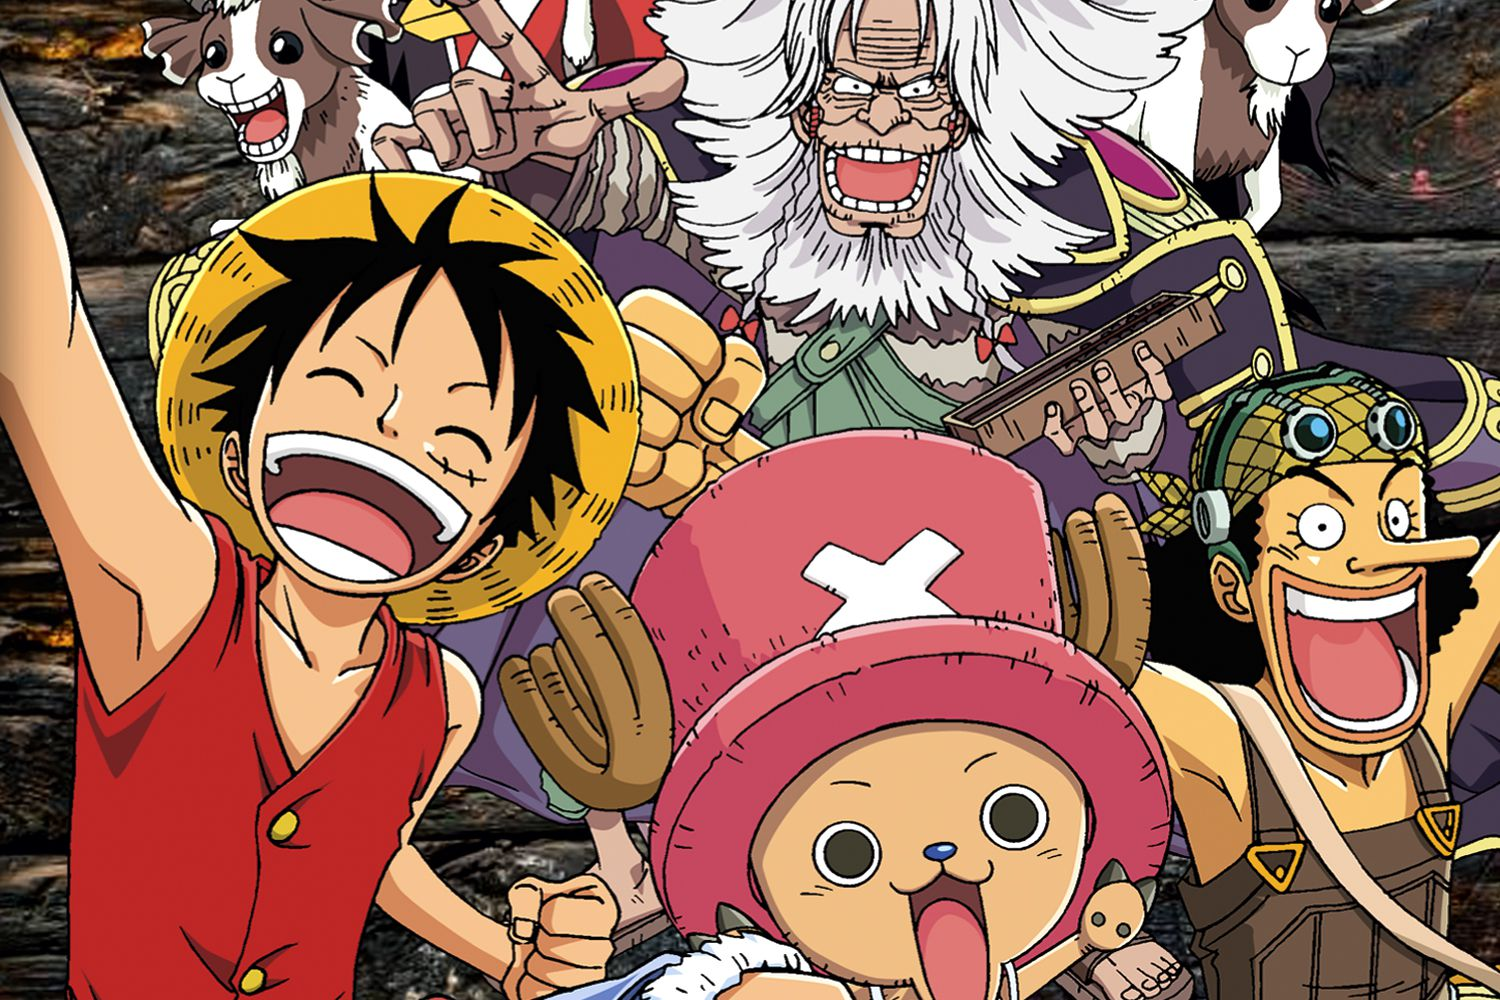 Where to Watch One Piece Anime Episodes Online for Free